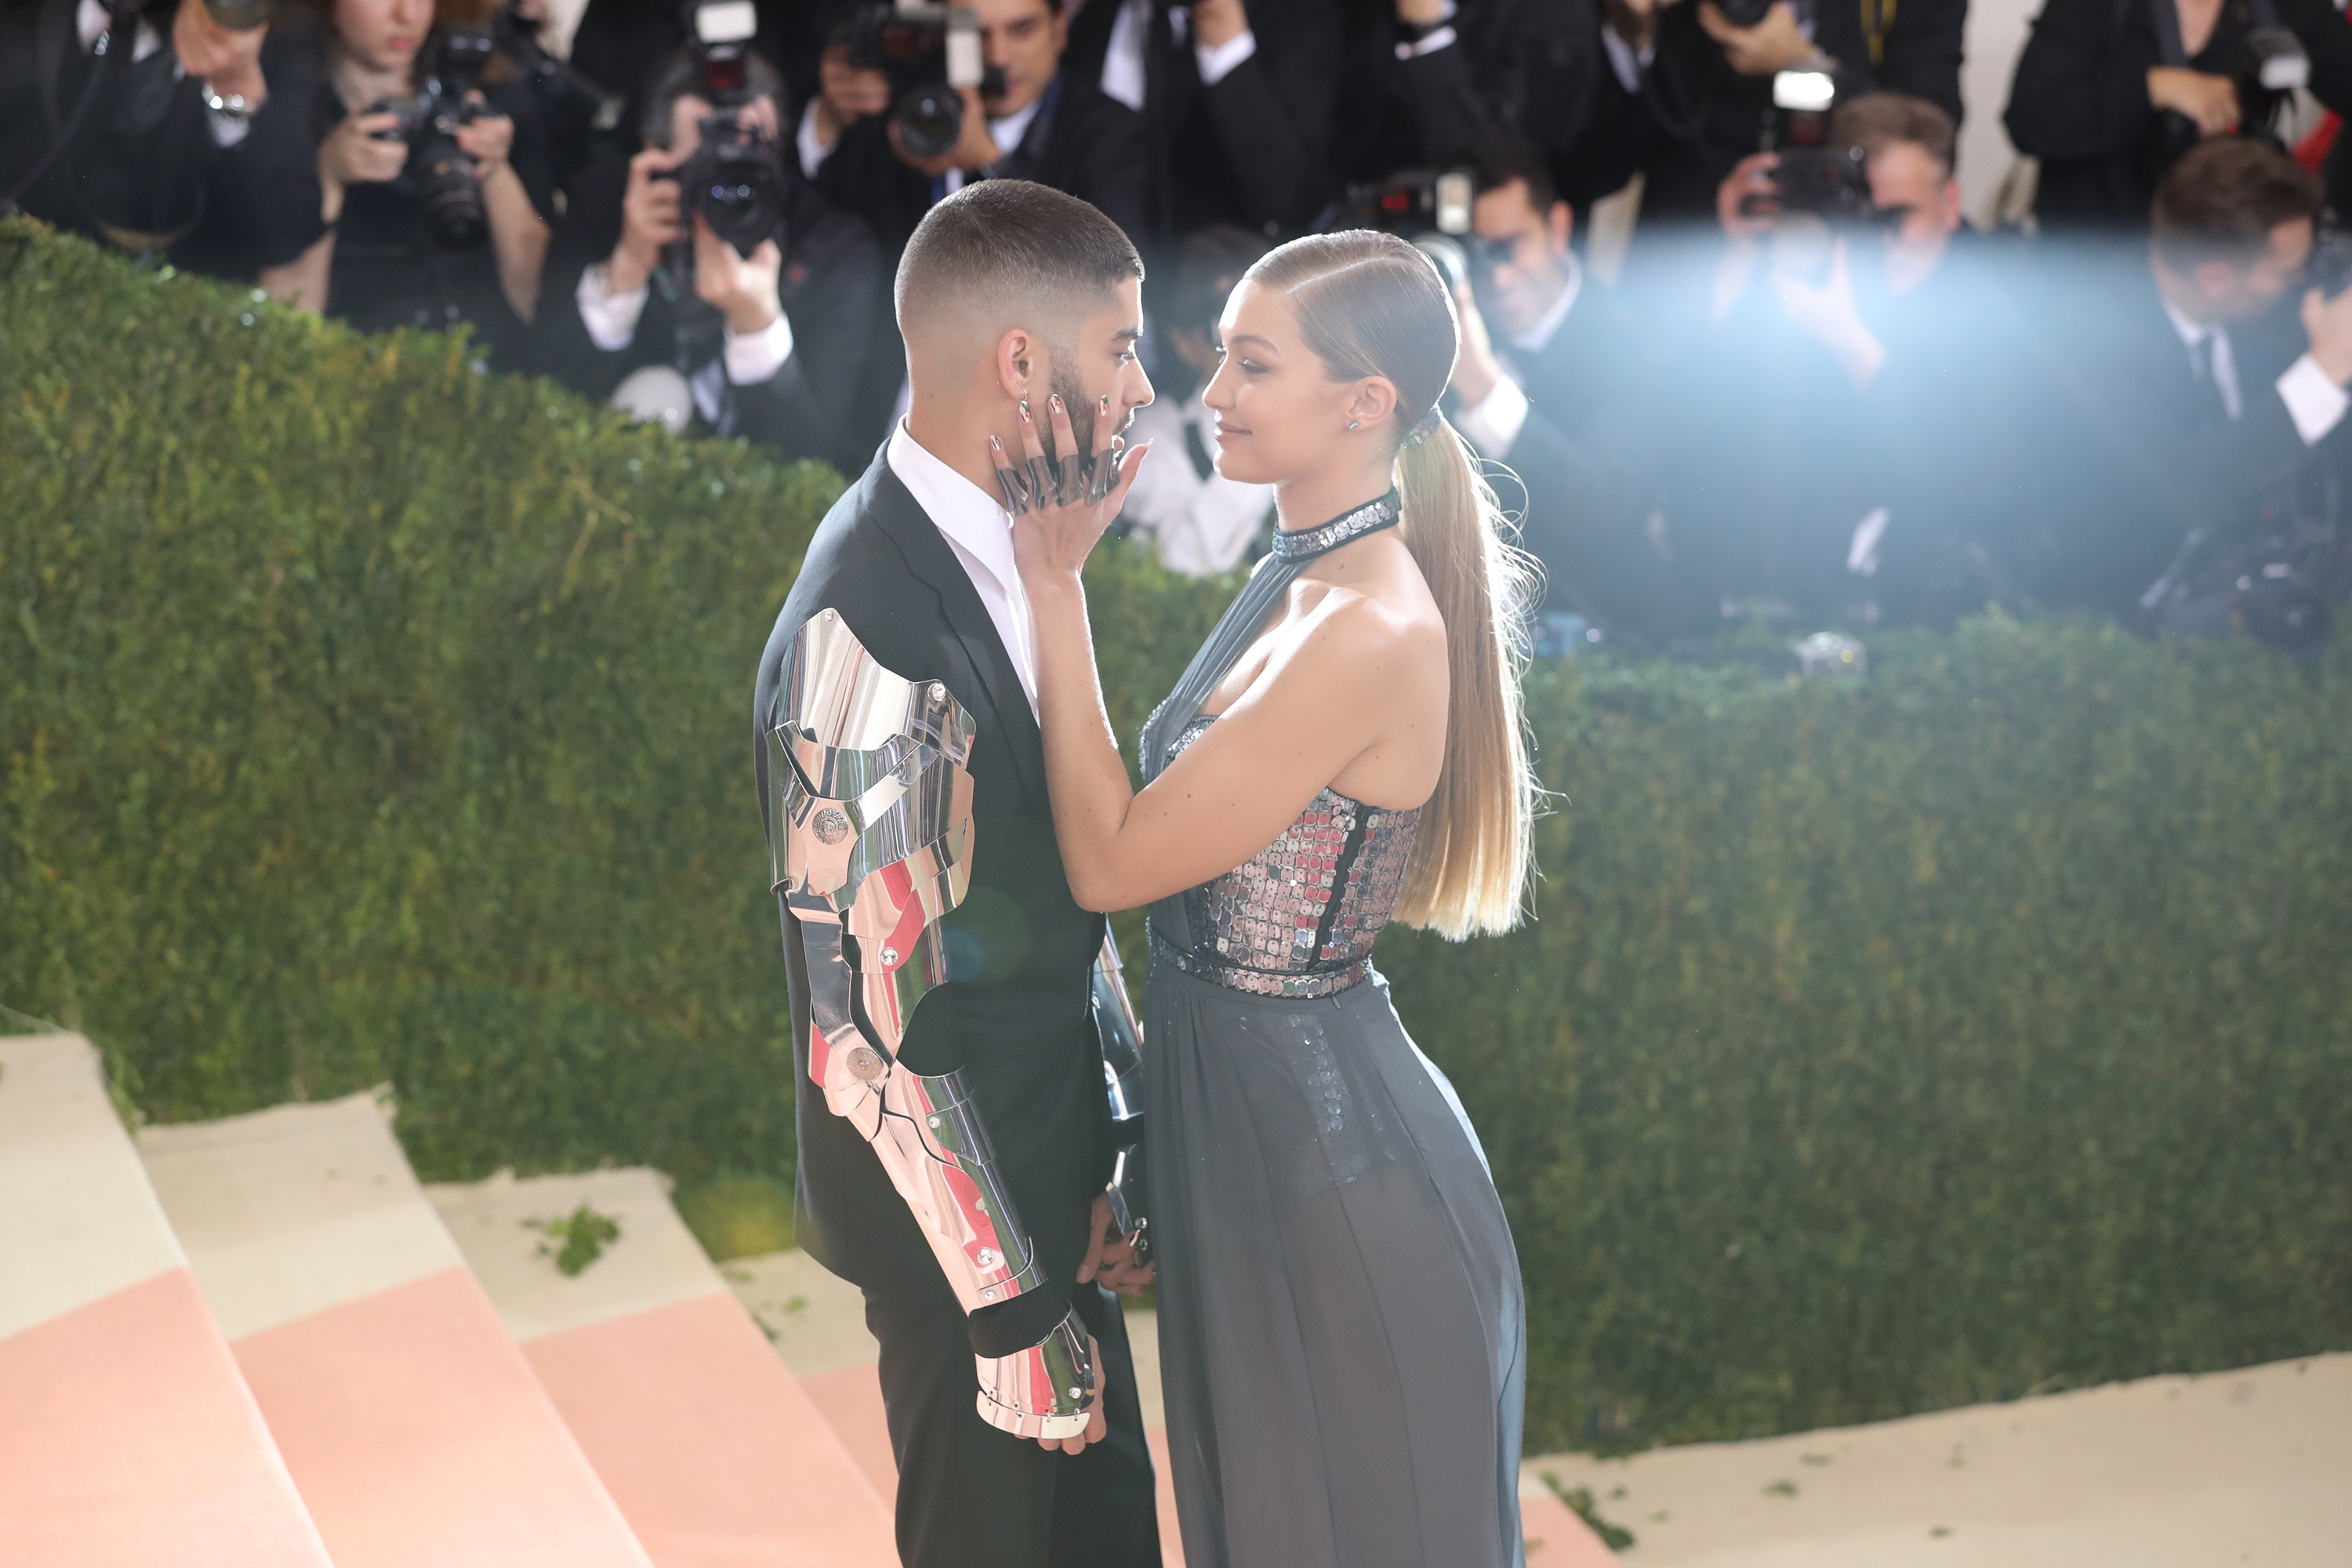 """NEW YORK, NY - MAY 02:  Gigi Hadid and Zayn Malik attend the """"Manus x Machina: Fashion In An Age Of Technology"""" Costume Institute Gala at Metropolitan Museum of Art on May 2, 2016 in New York City.  (Photo by Neilson Barnard/Getty Images for The Huffington Post)"""